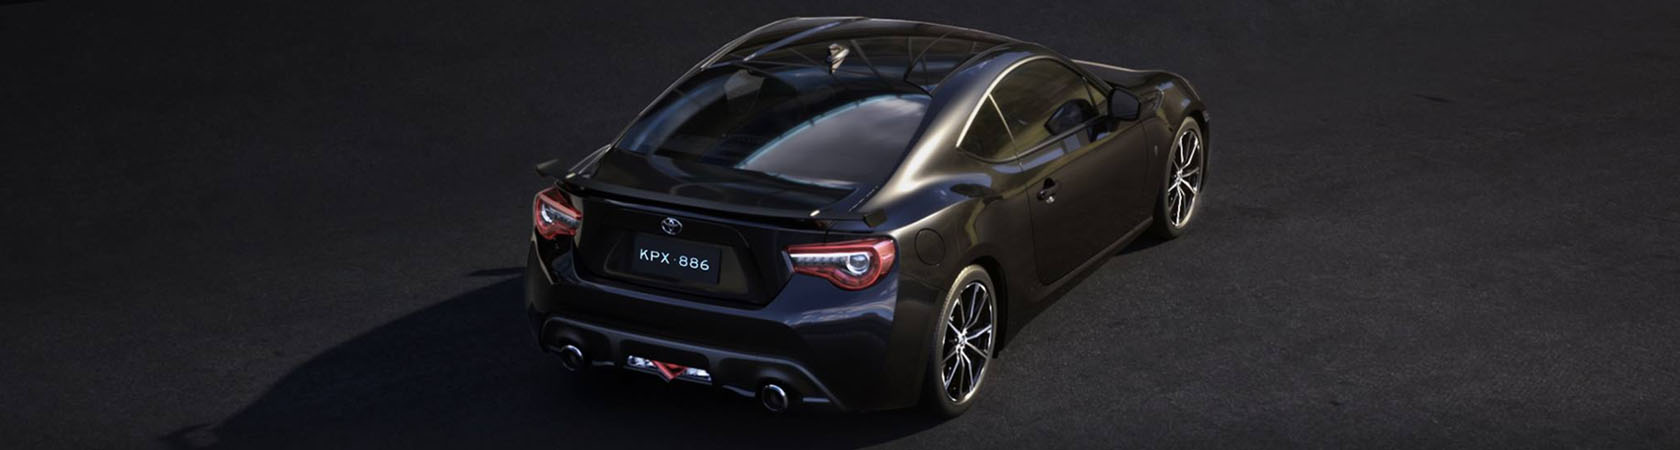 Tamworth City Toyota 86